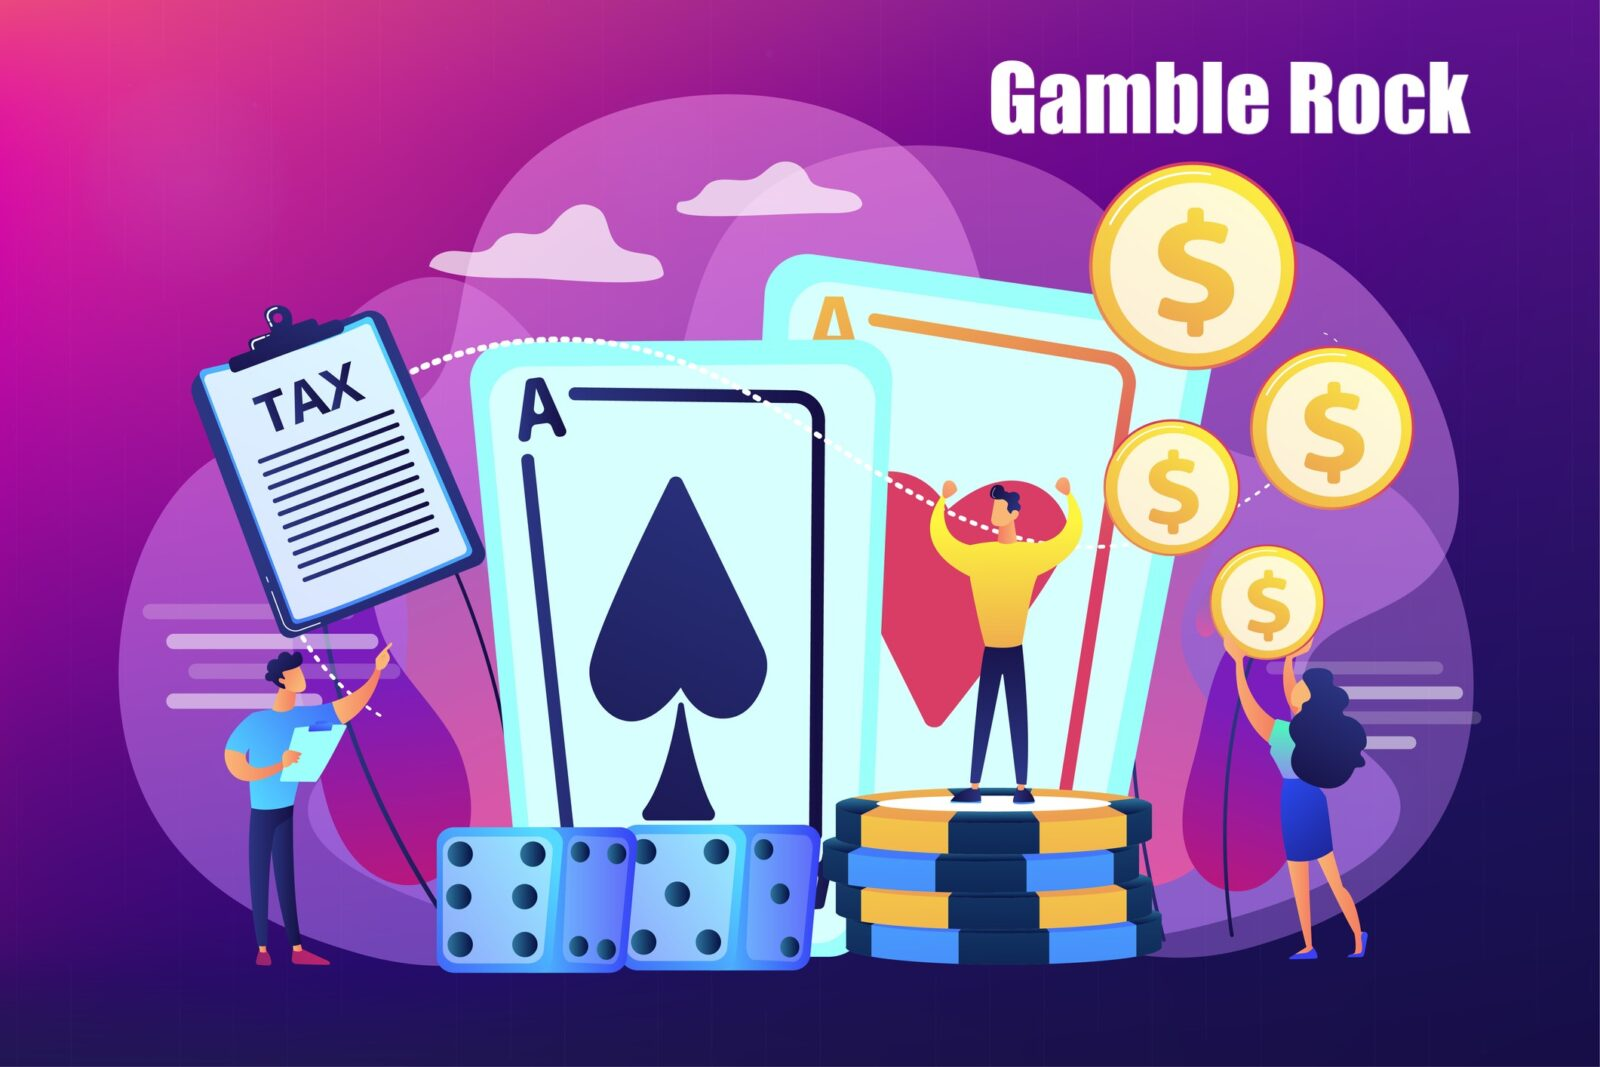 Gamble Rock Online Winners